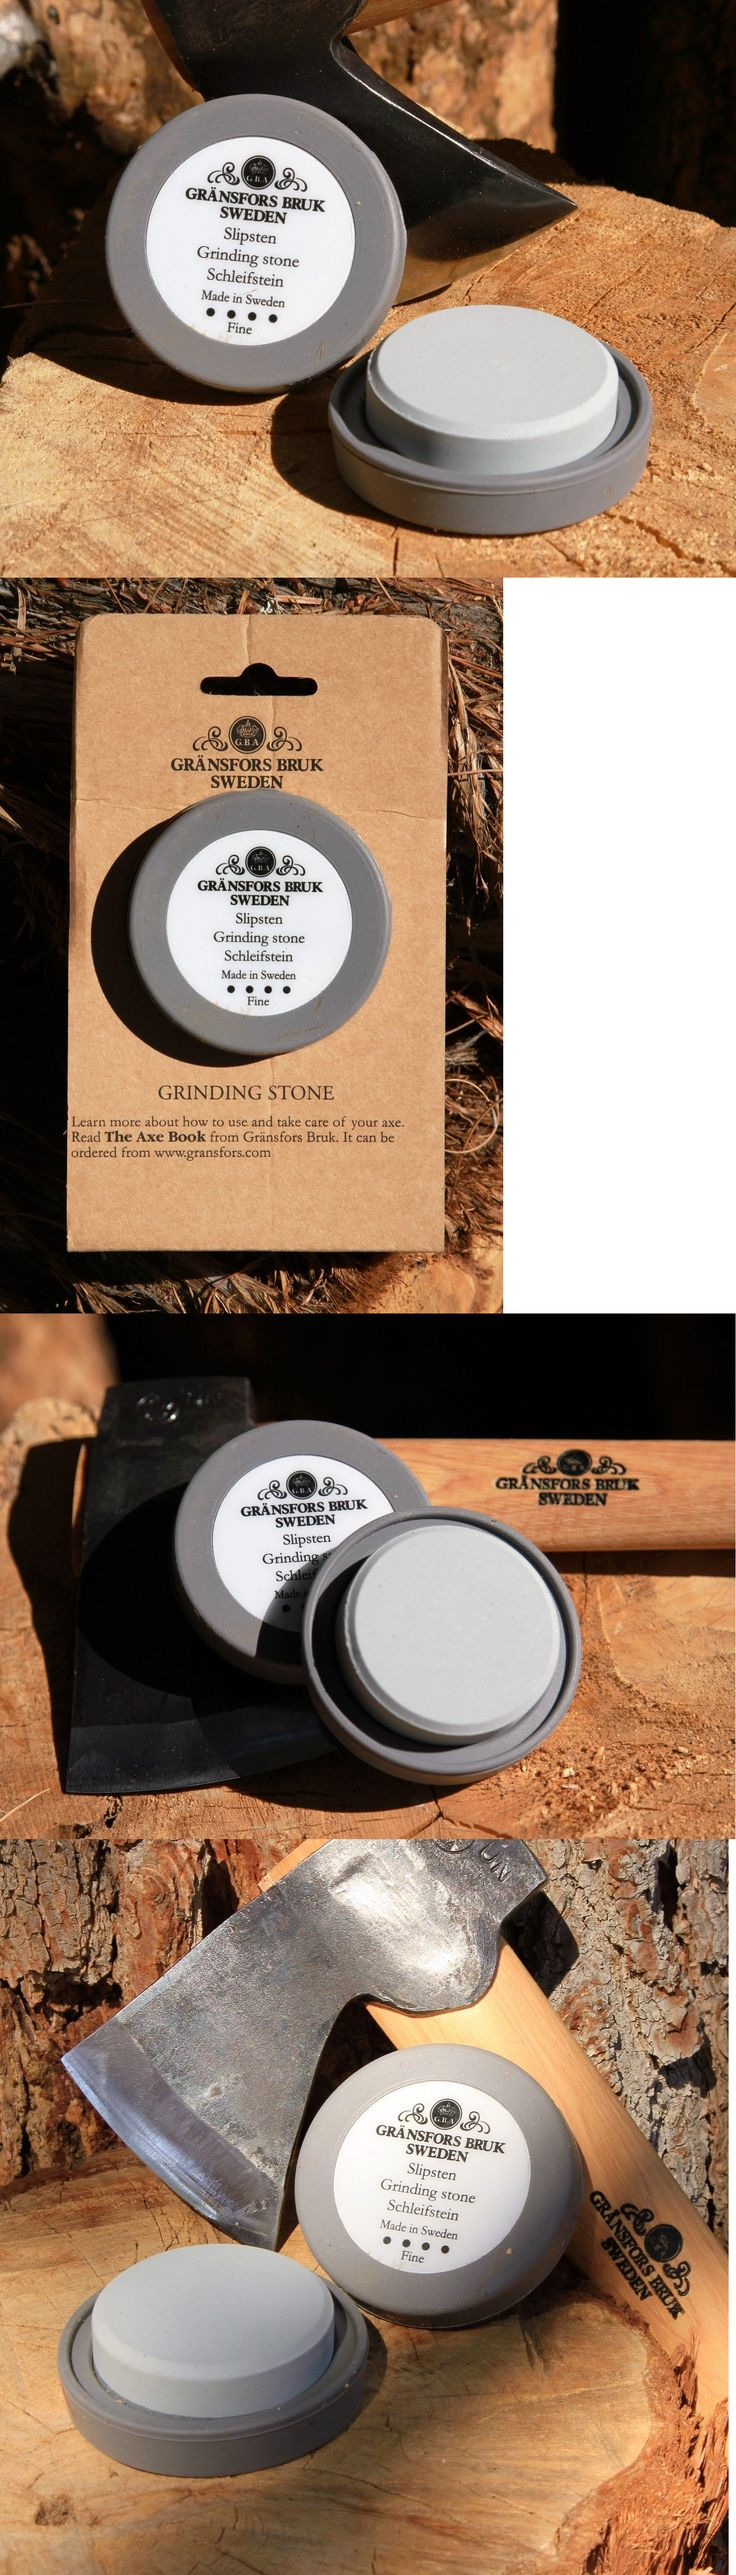 Camping Hatchets and Axes 75234: Gransfors Bruk Grinding Sharpening Stone #4034 - Ceramic - New In Stock -> BUY IT NOW ONLY: $56.5 on eBay!